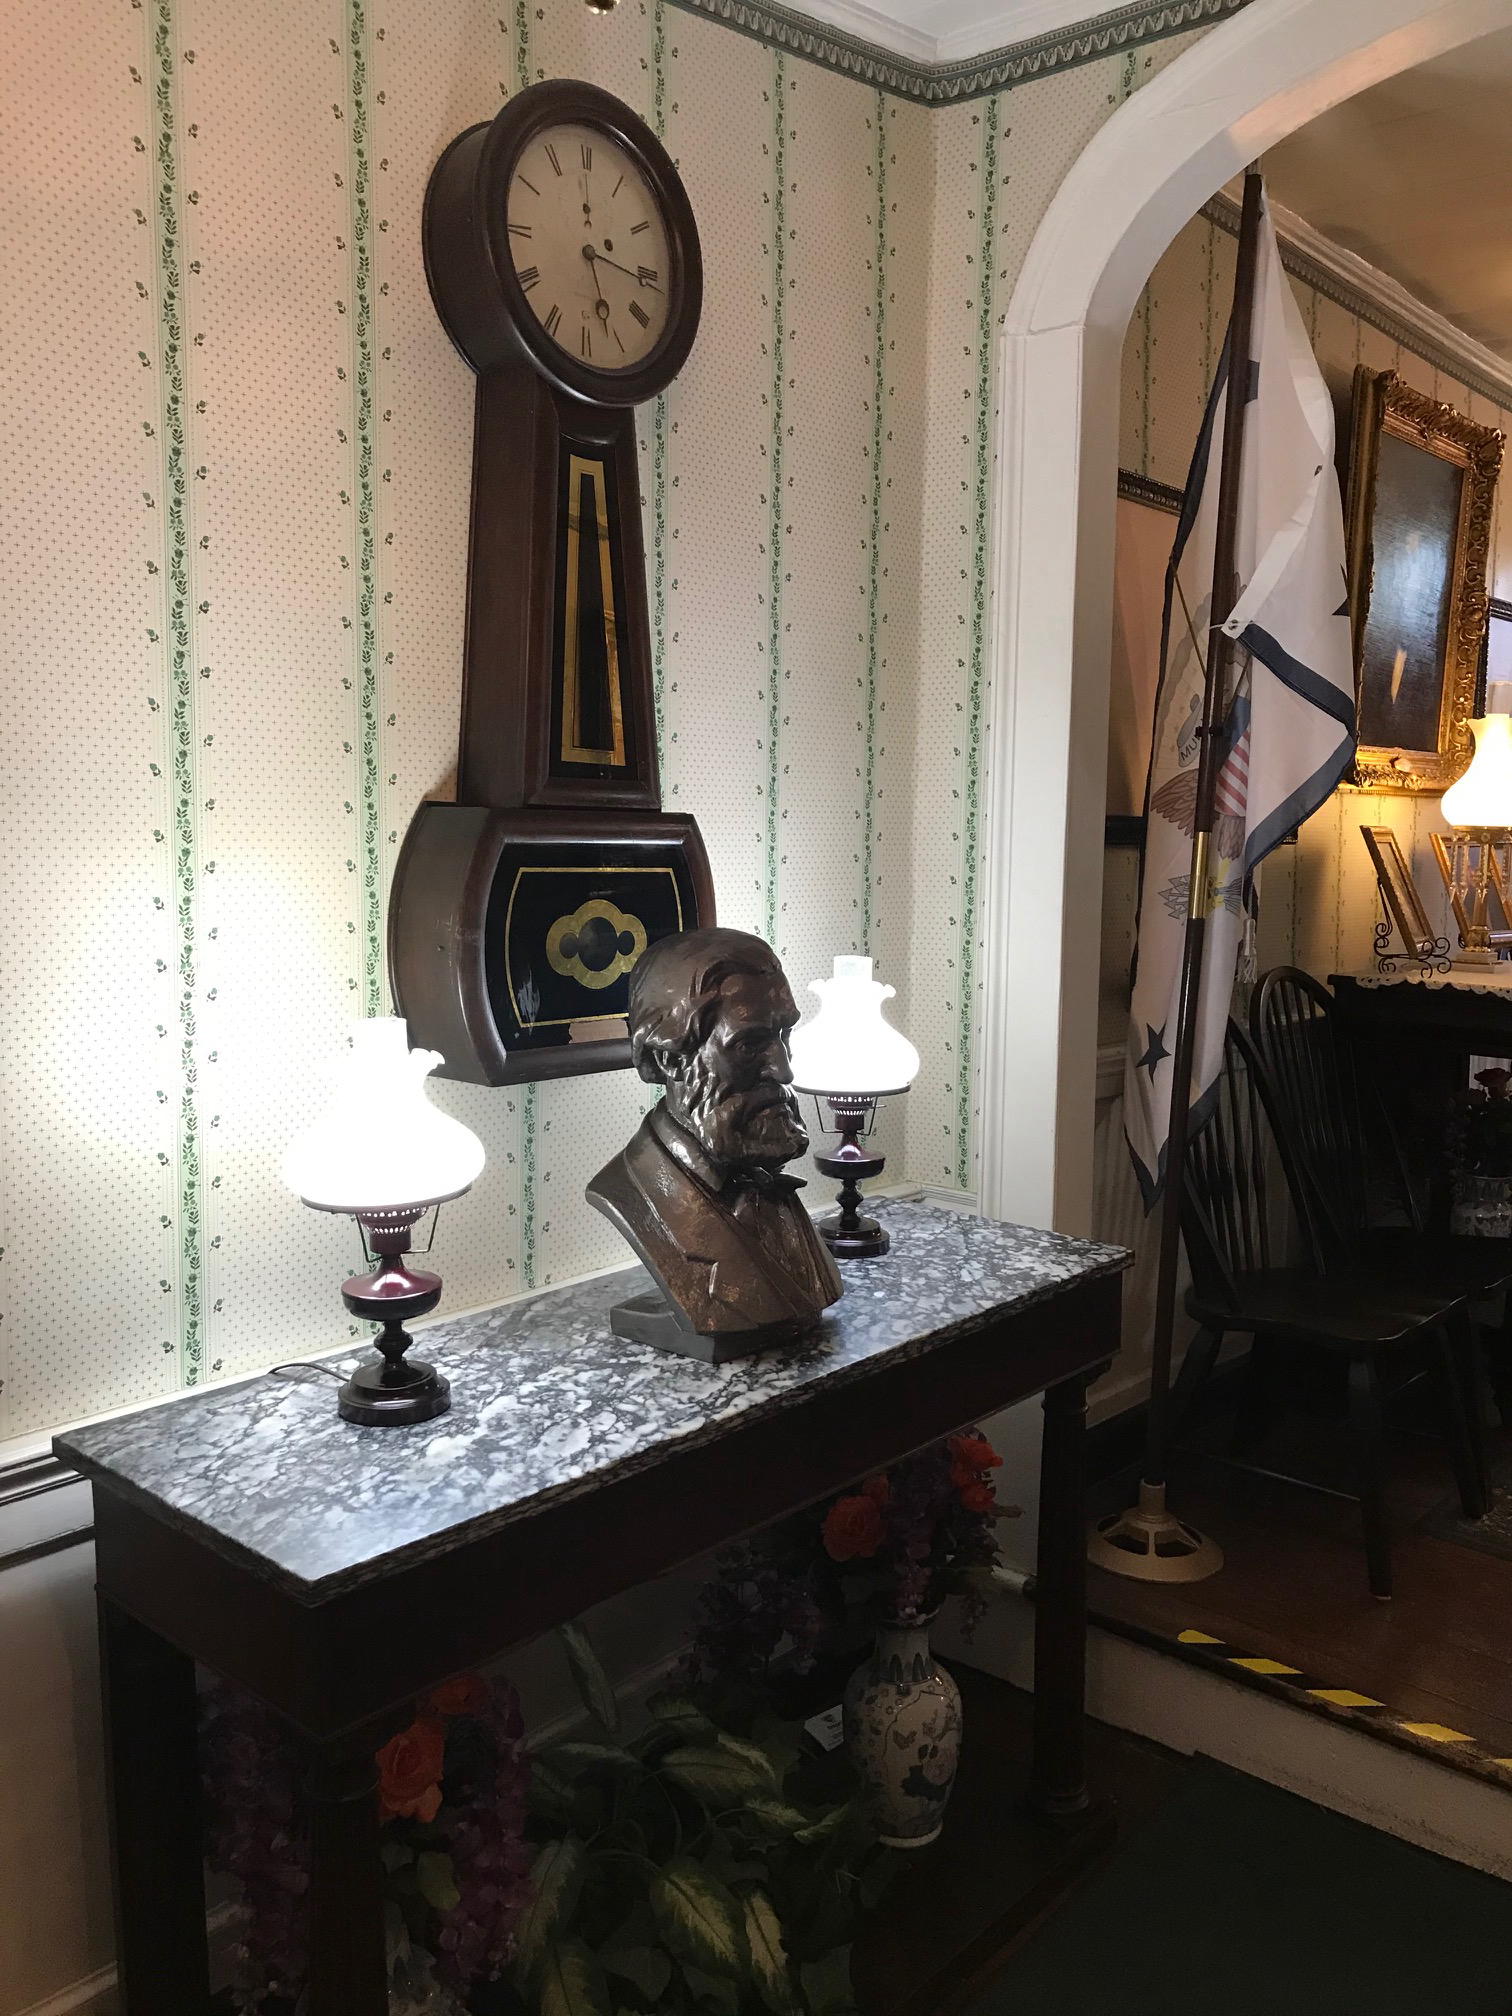 Banjo Clock and a Bust of Thomas Green Clemson